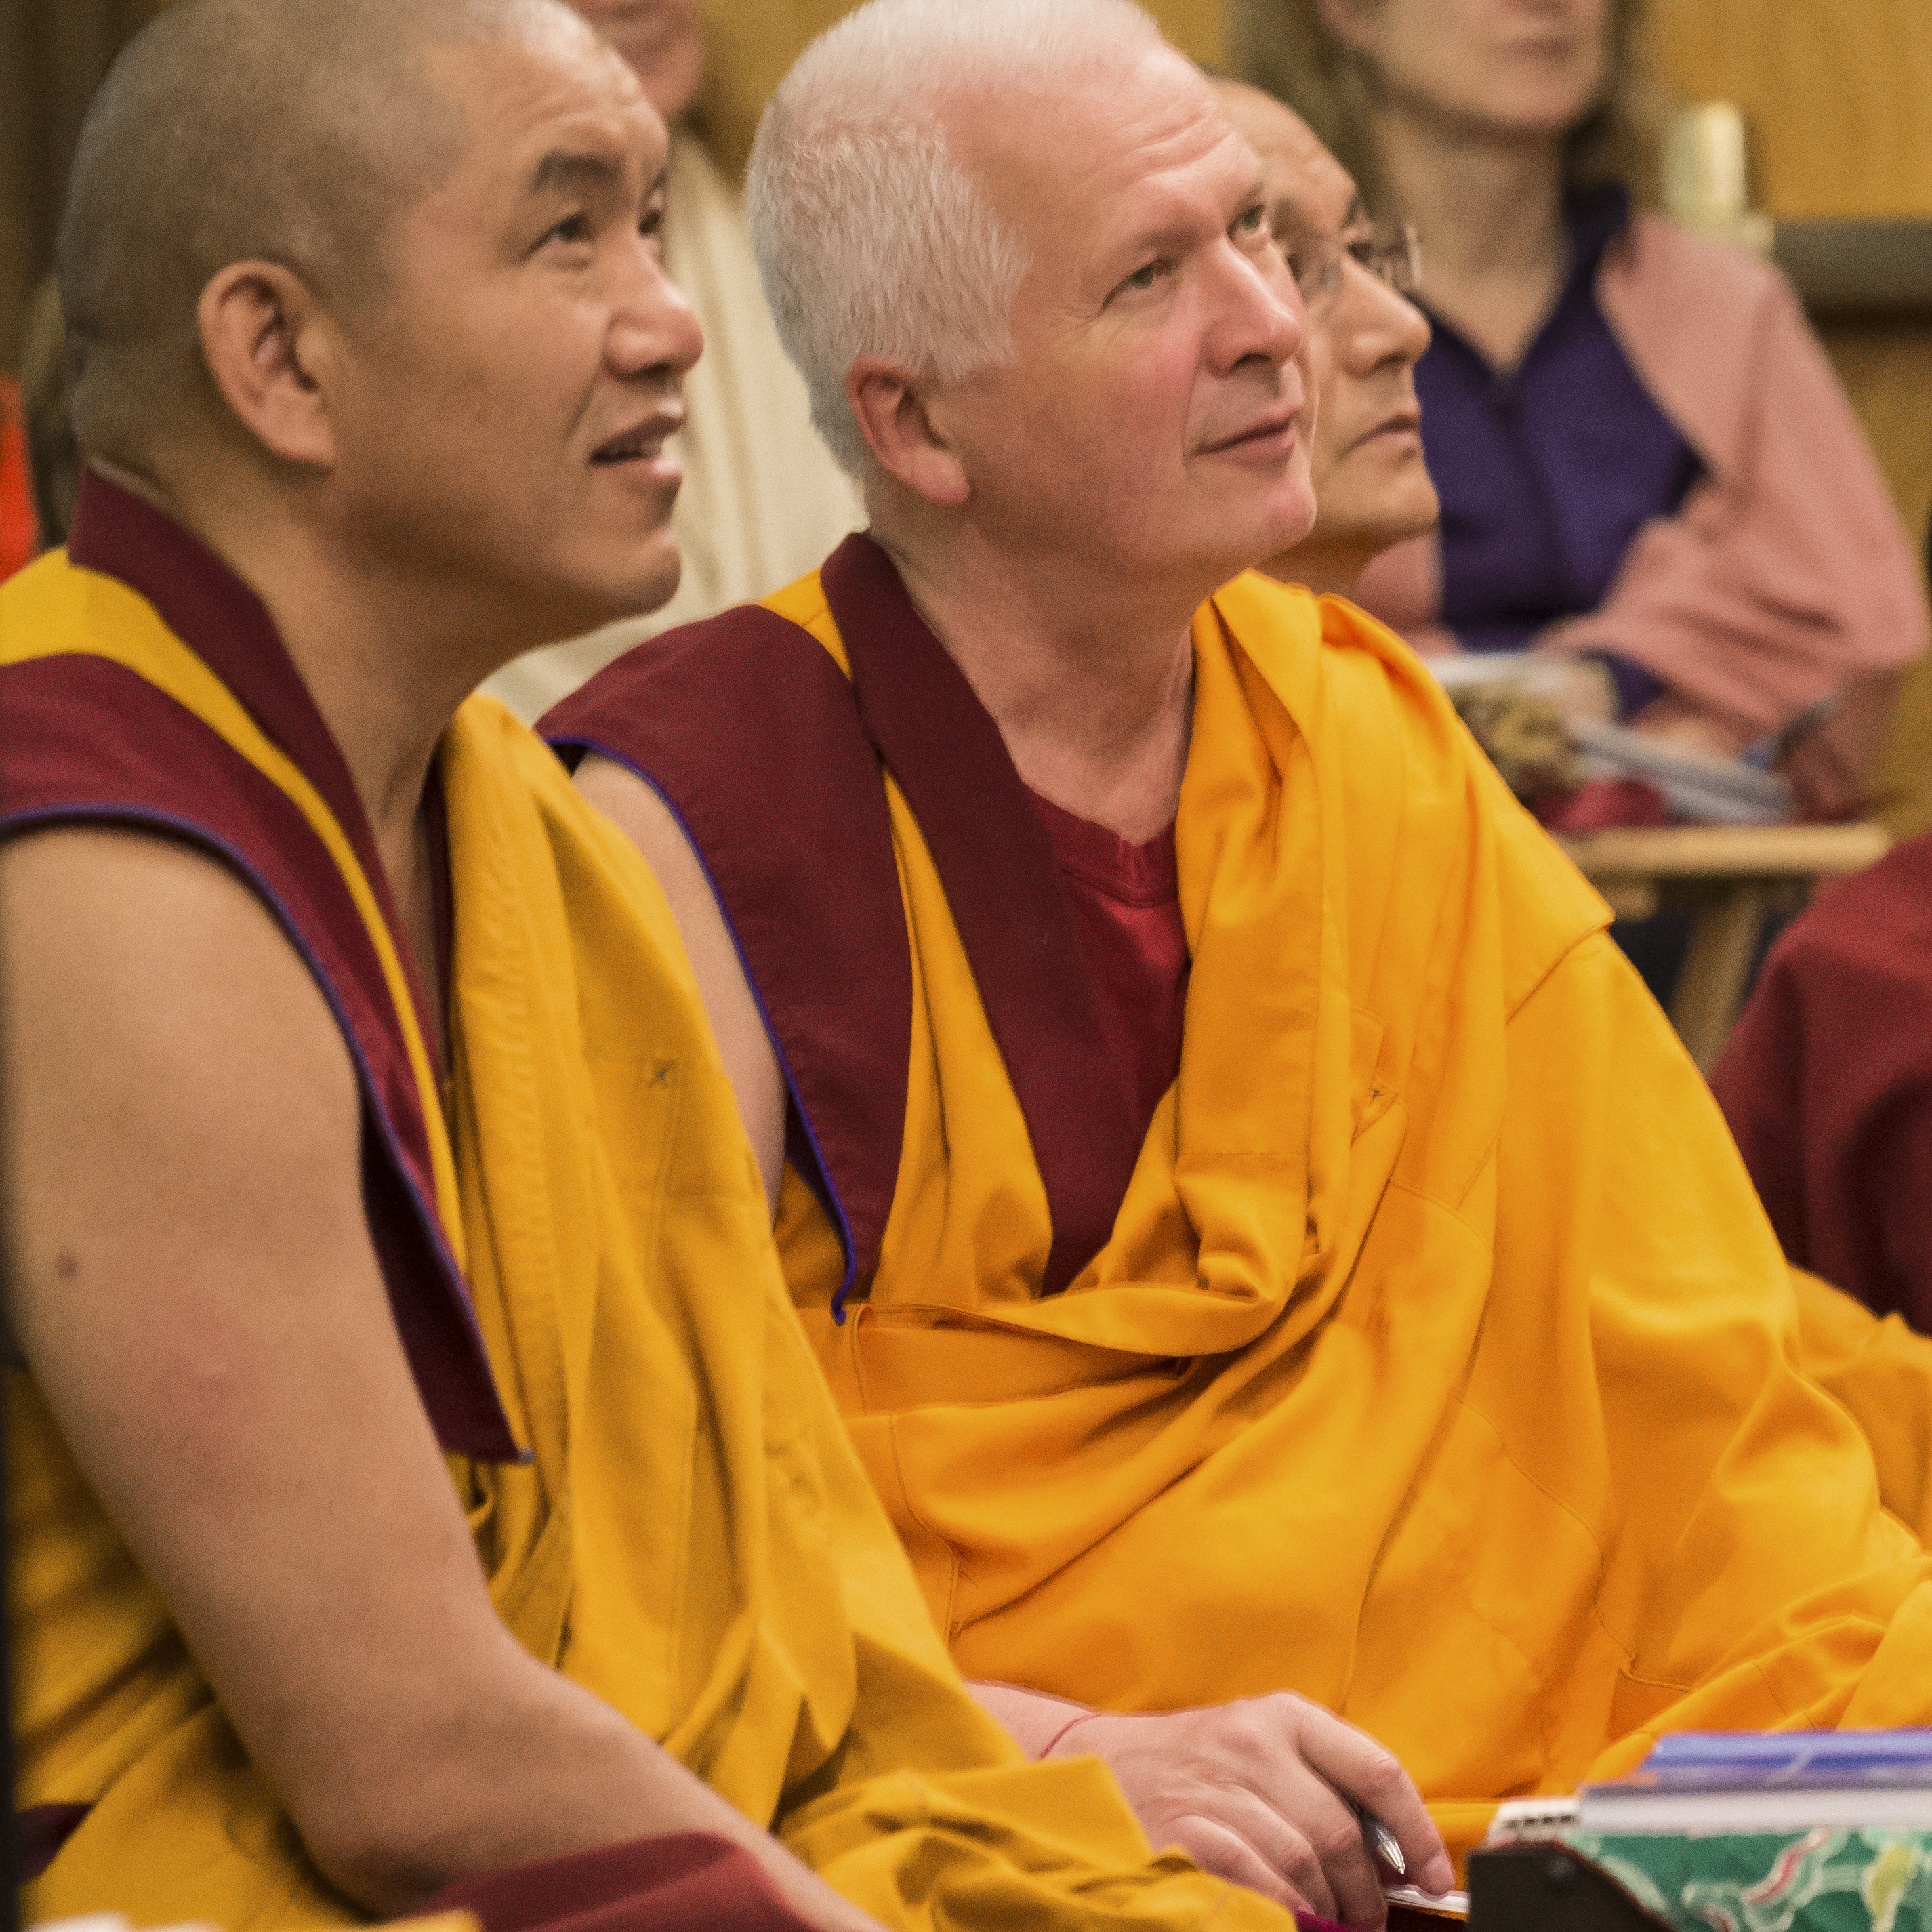 Geshe Gelek and Ven Steve watch Rinpoche teachat Light of the Path 2014. (Photo Roy Harvey)